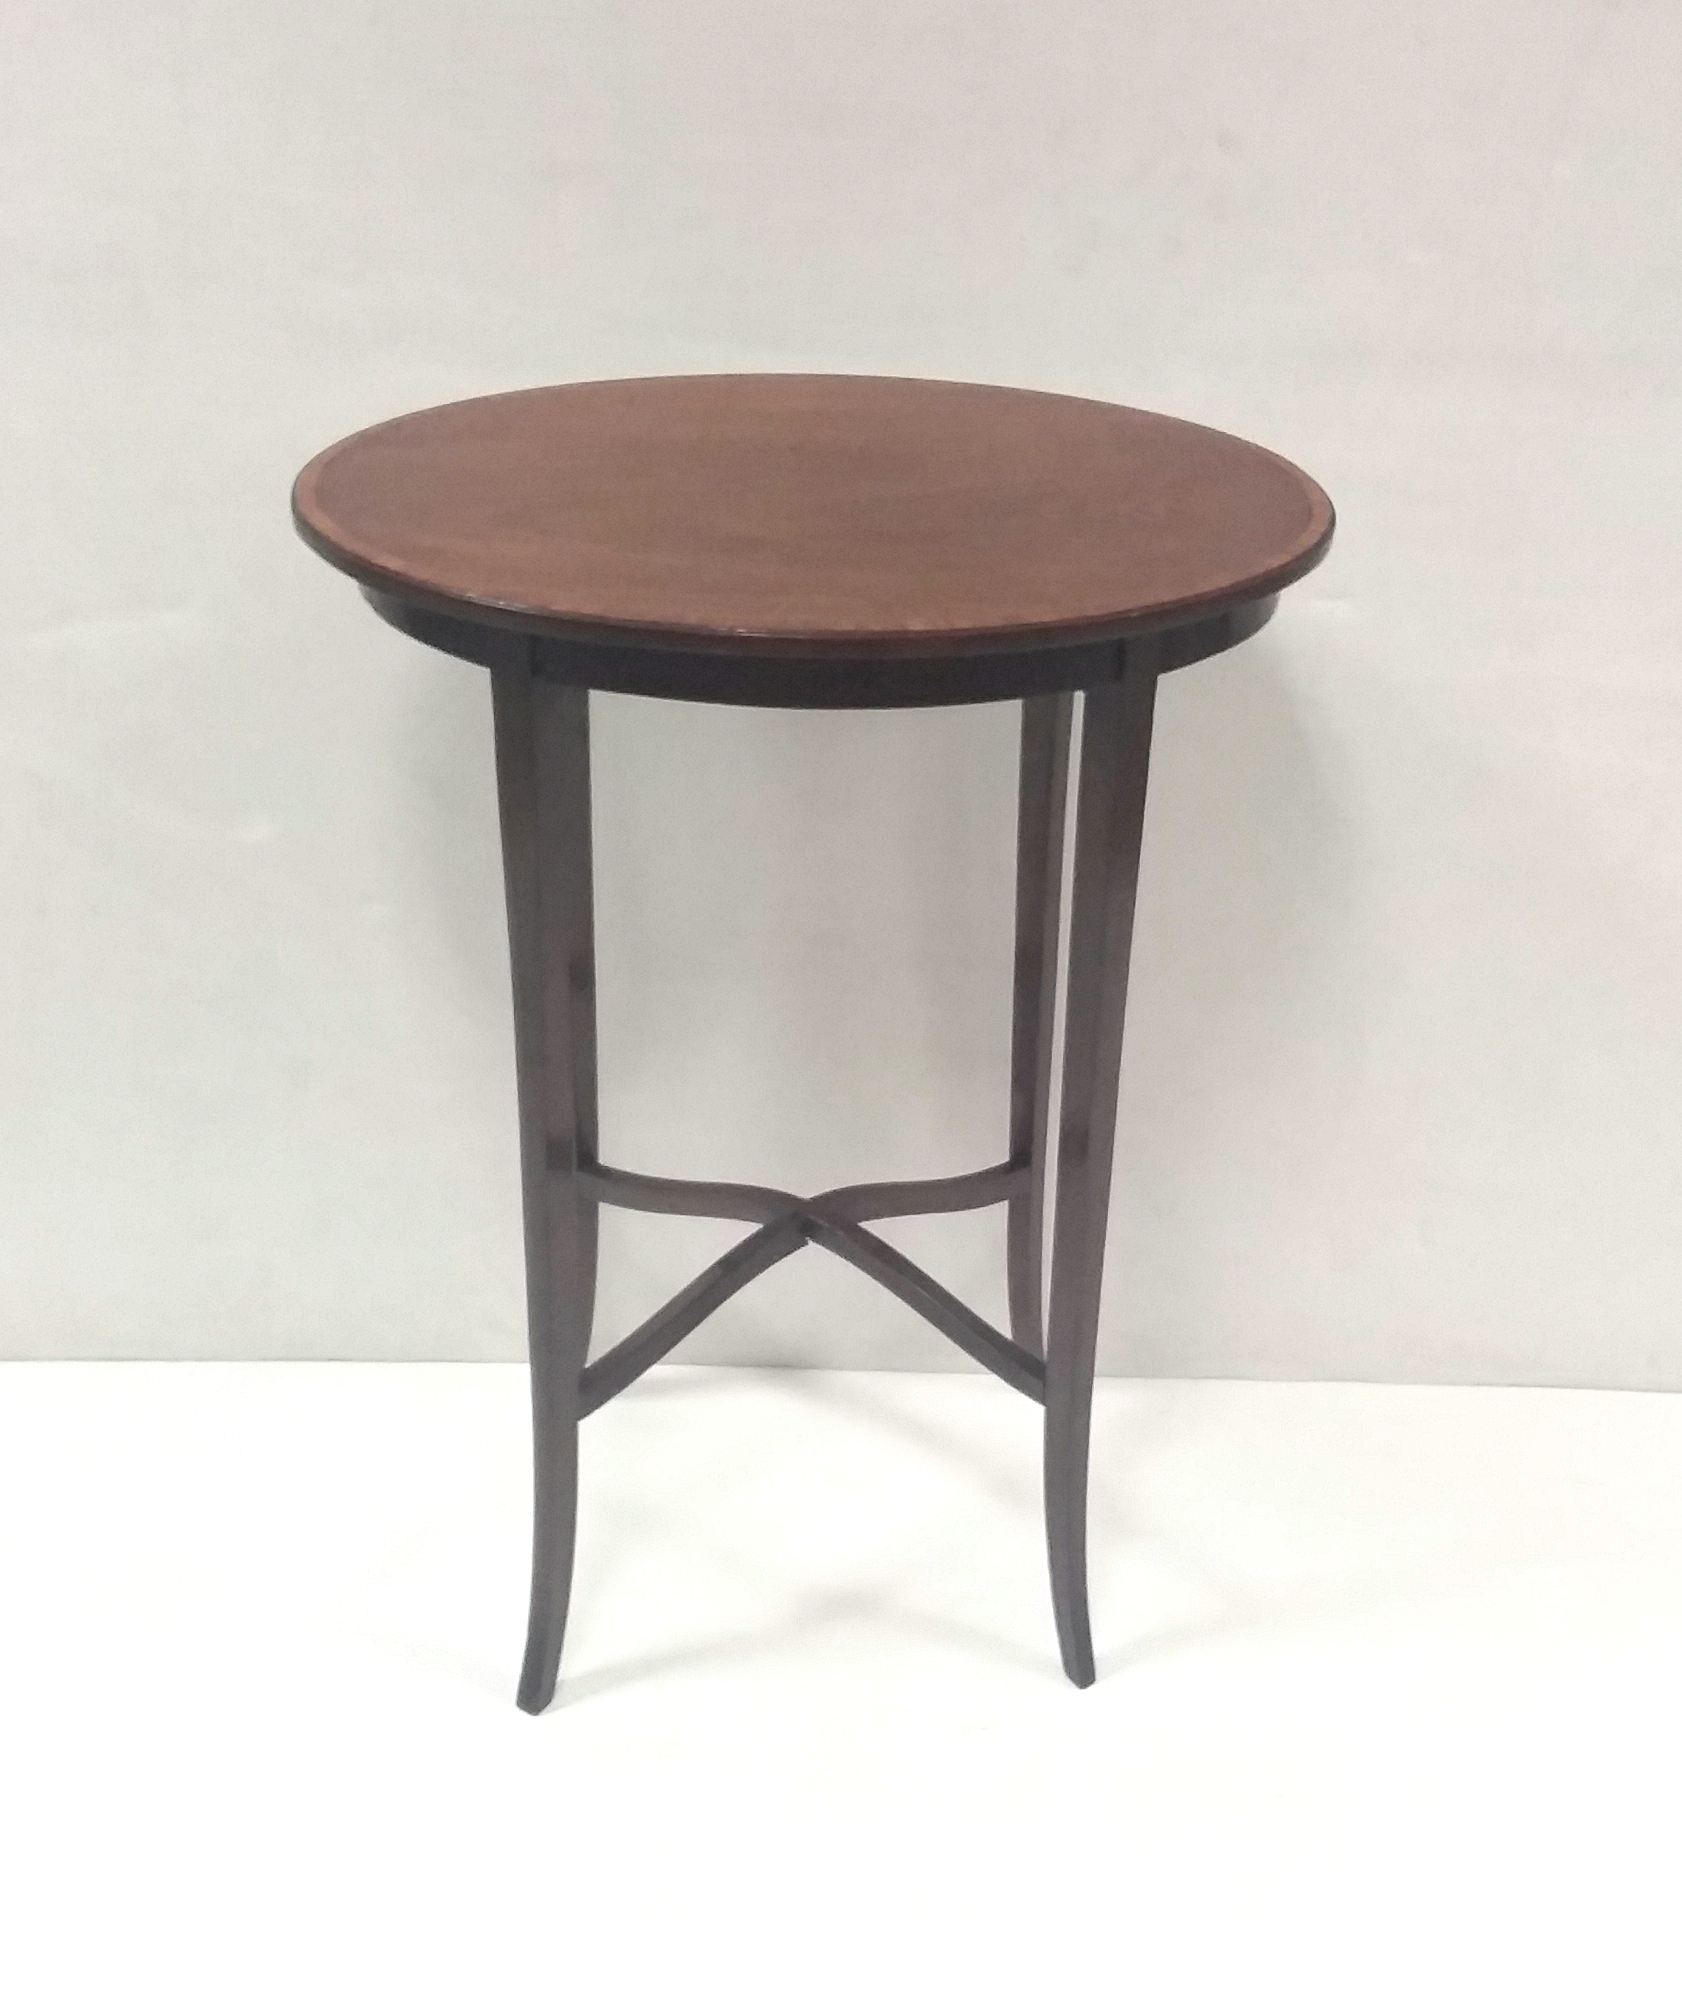 Antique_Edwardian_Occasional_Table